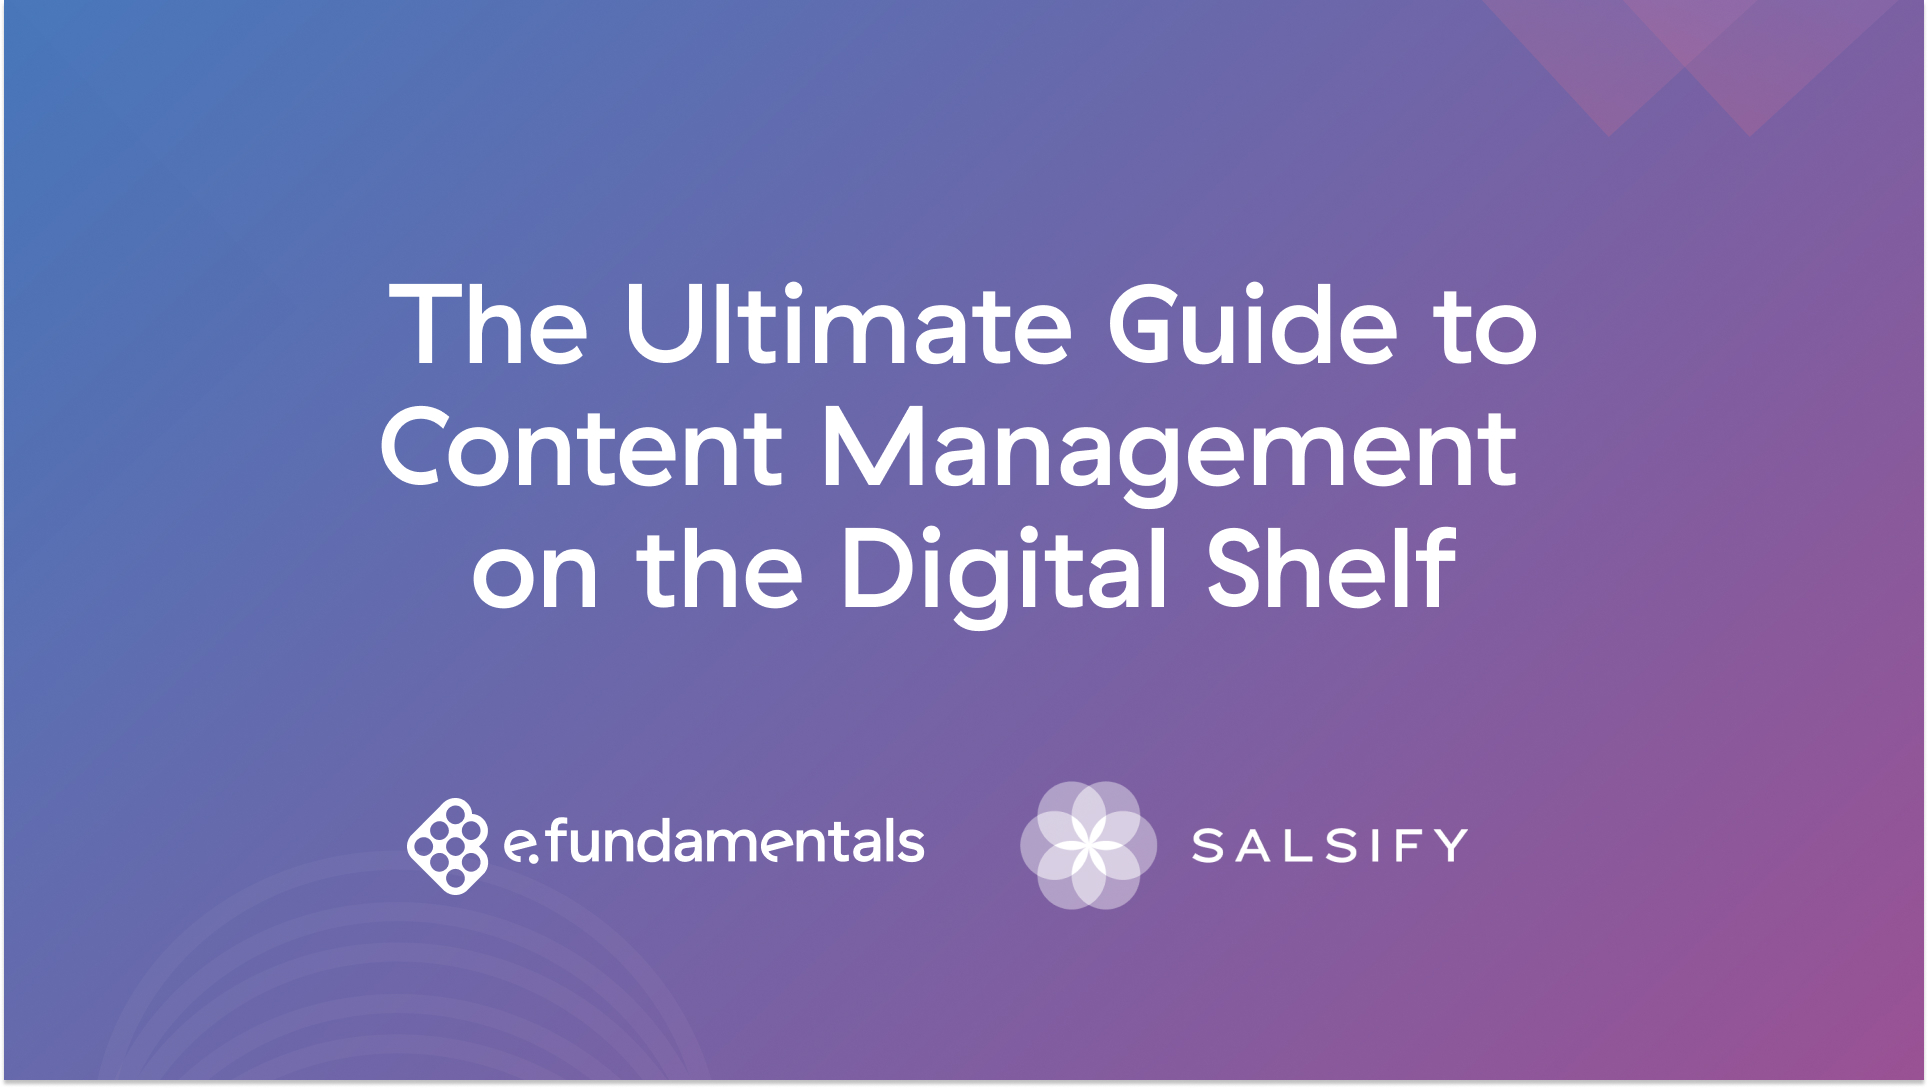 Ultimate guide to content management on the digital shelf guide